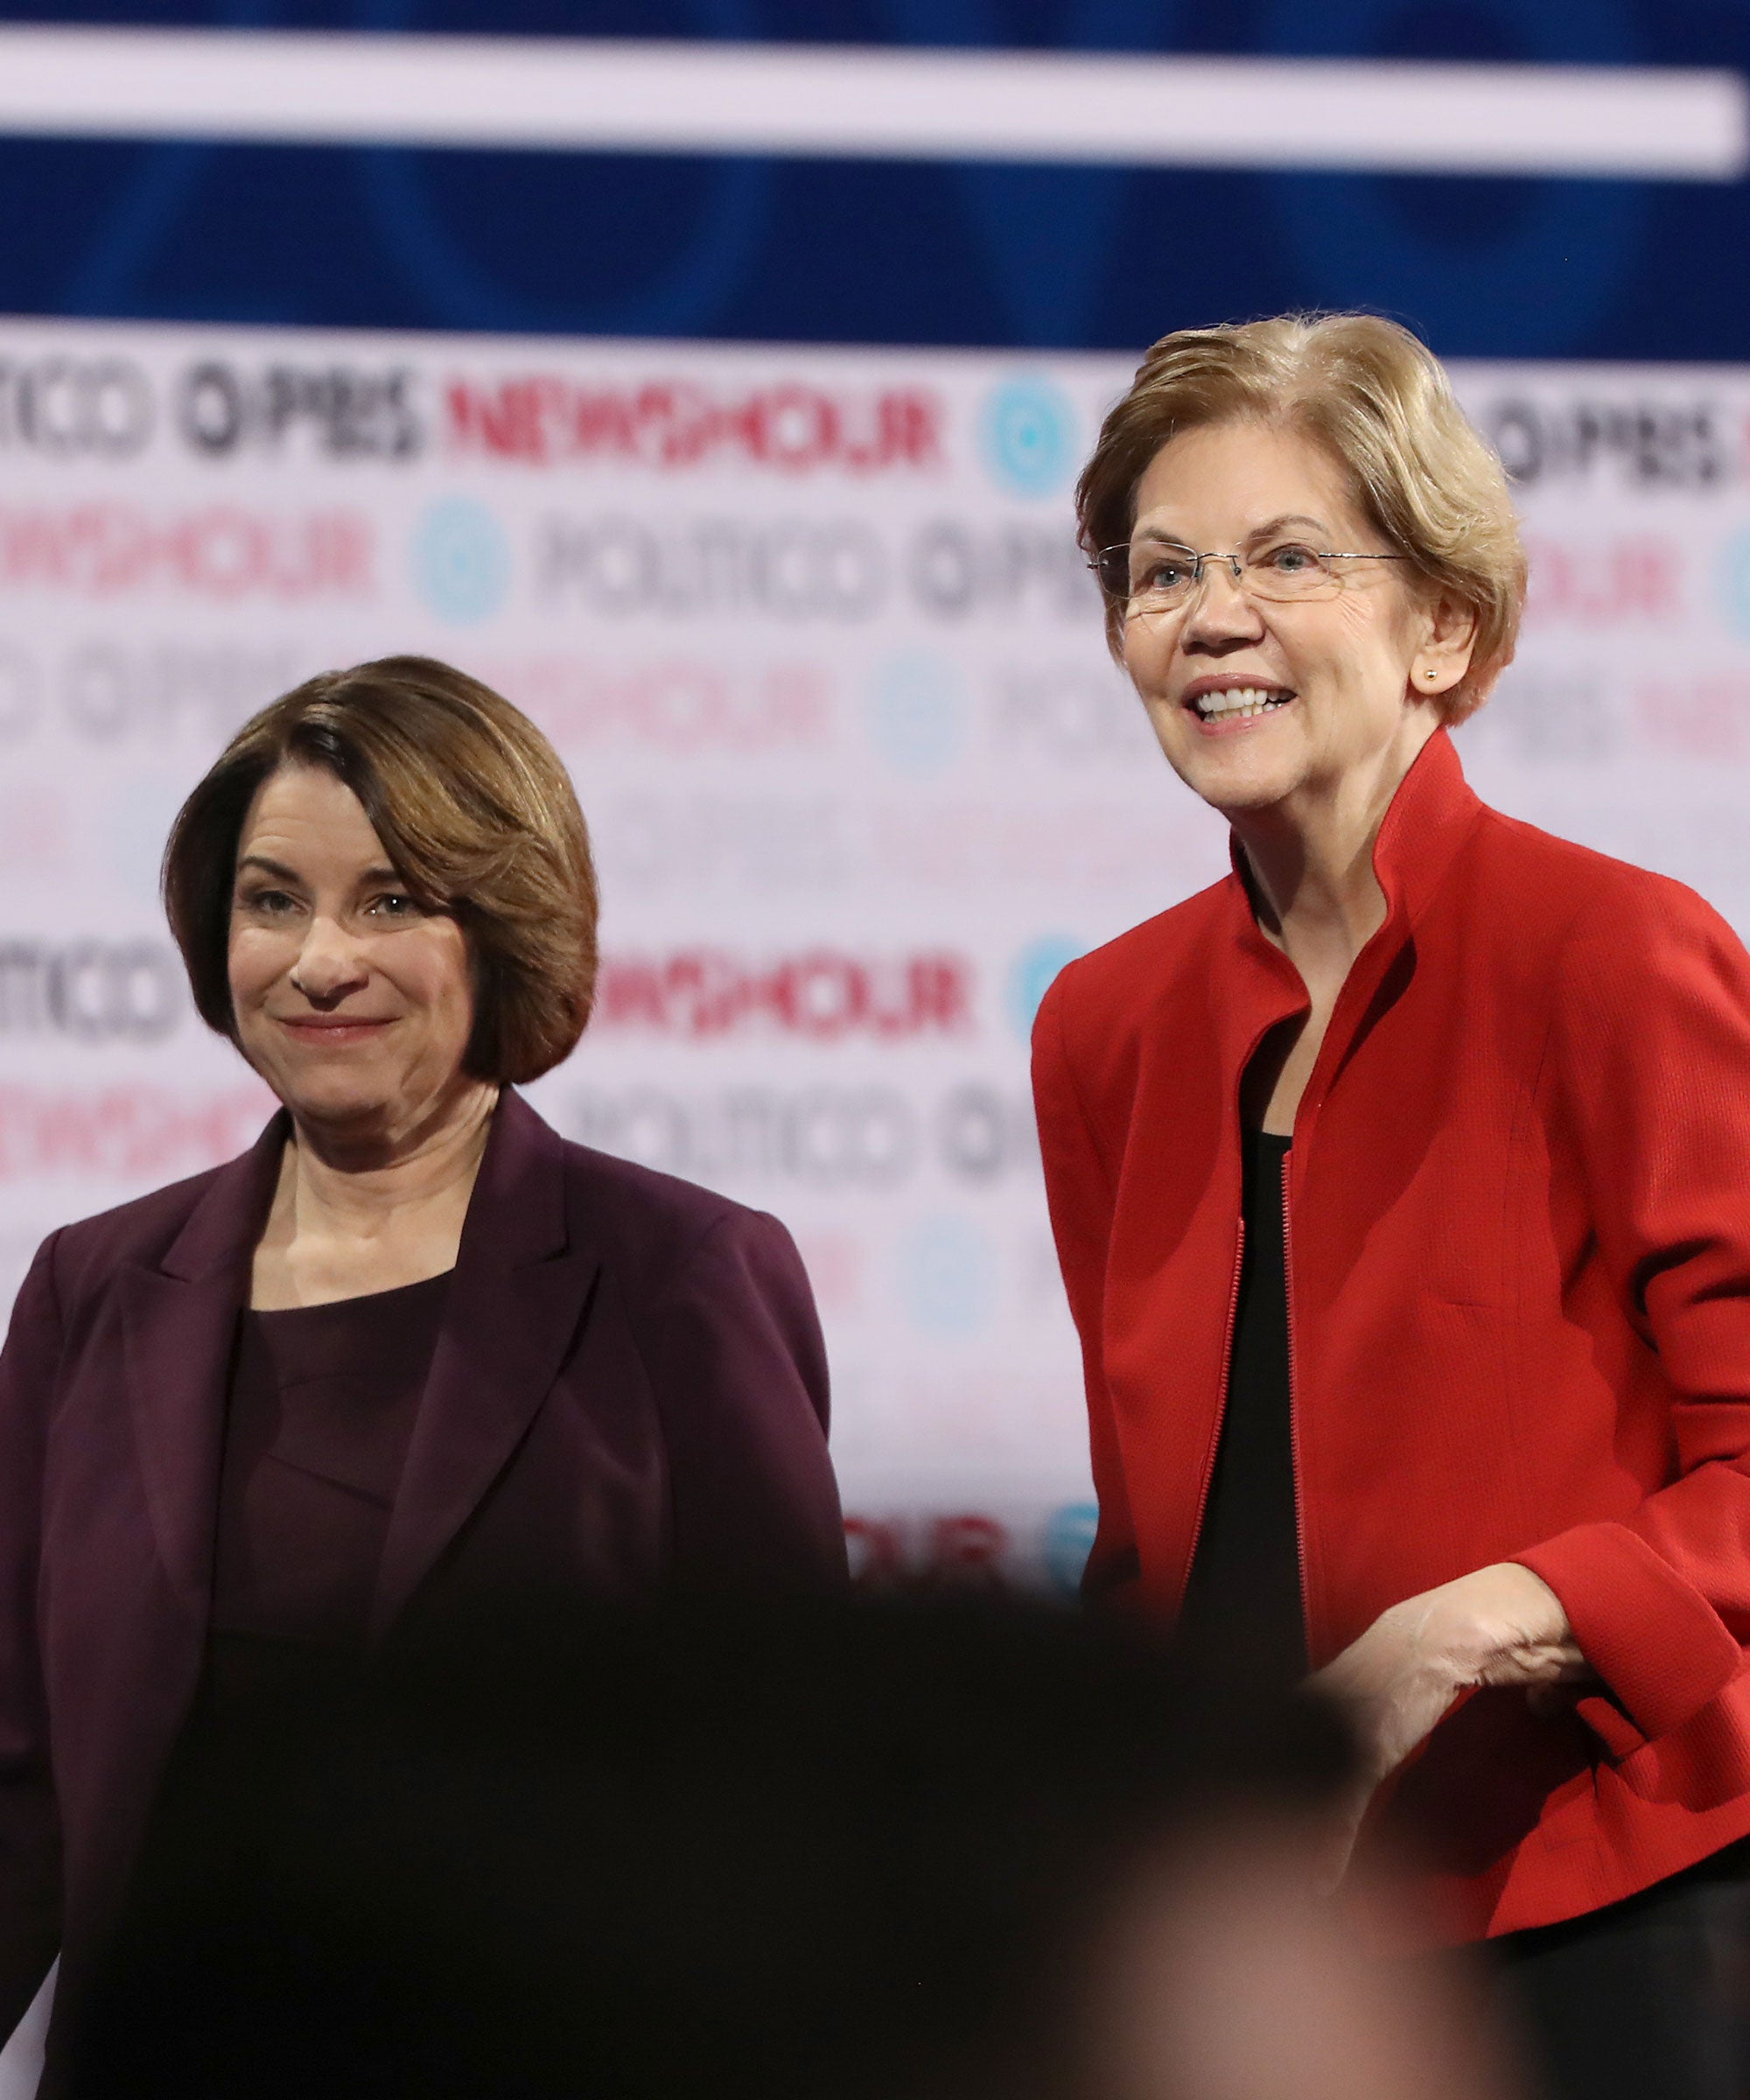 Warren & Klobuchar 2020? This Unprecedented Endorsement Was Not What Democrats Expected